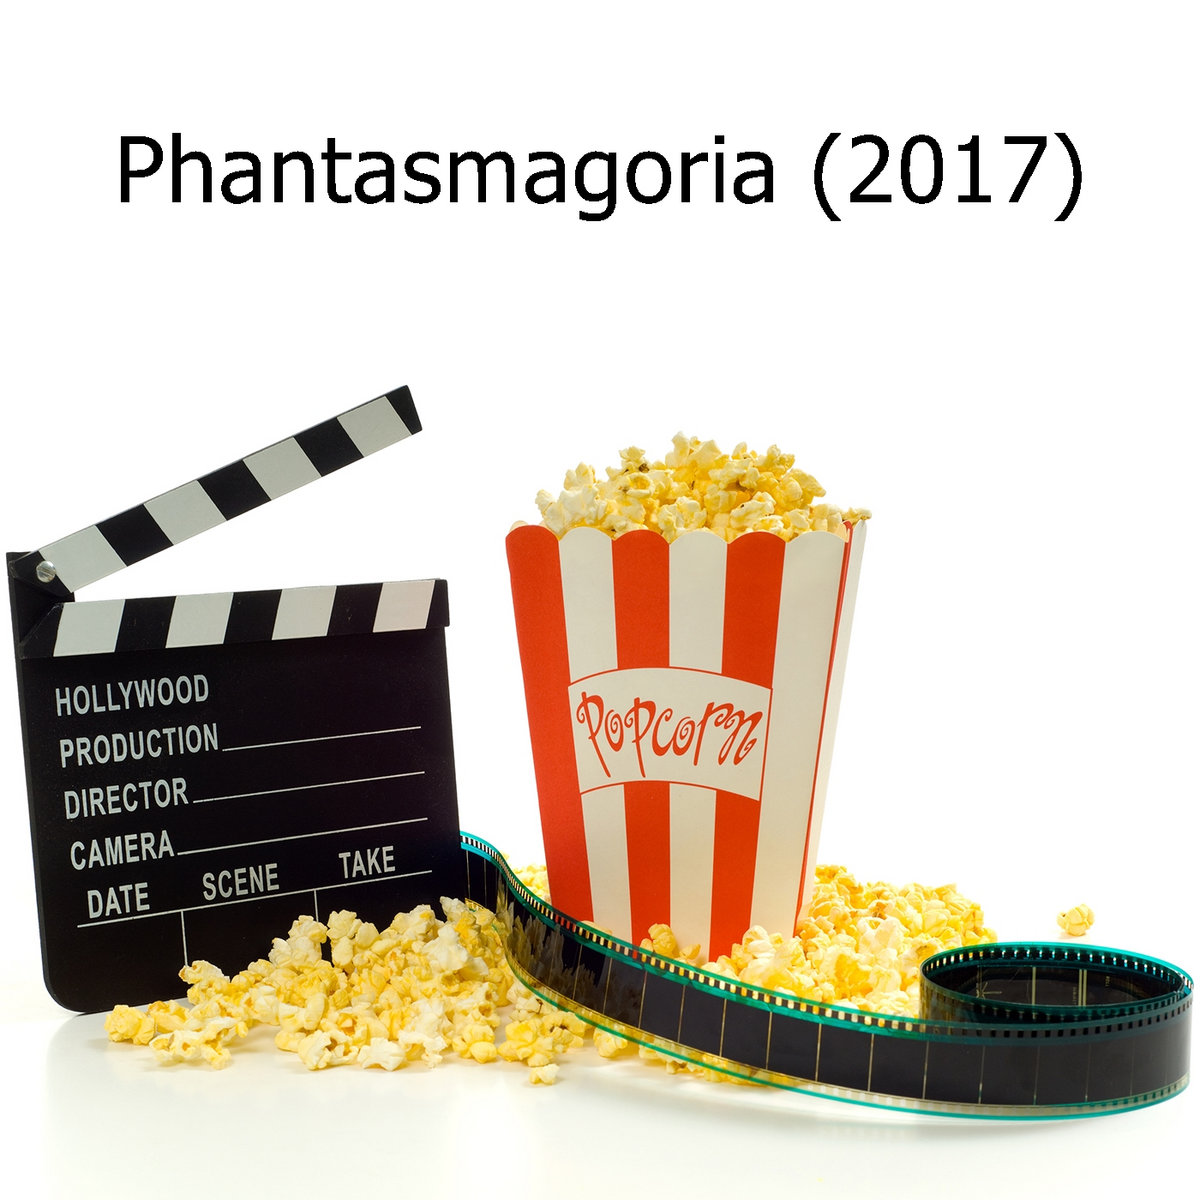 Phantasmagoria watching full movie hd 13